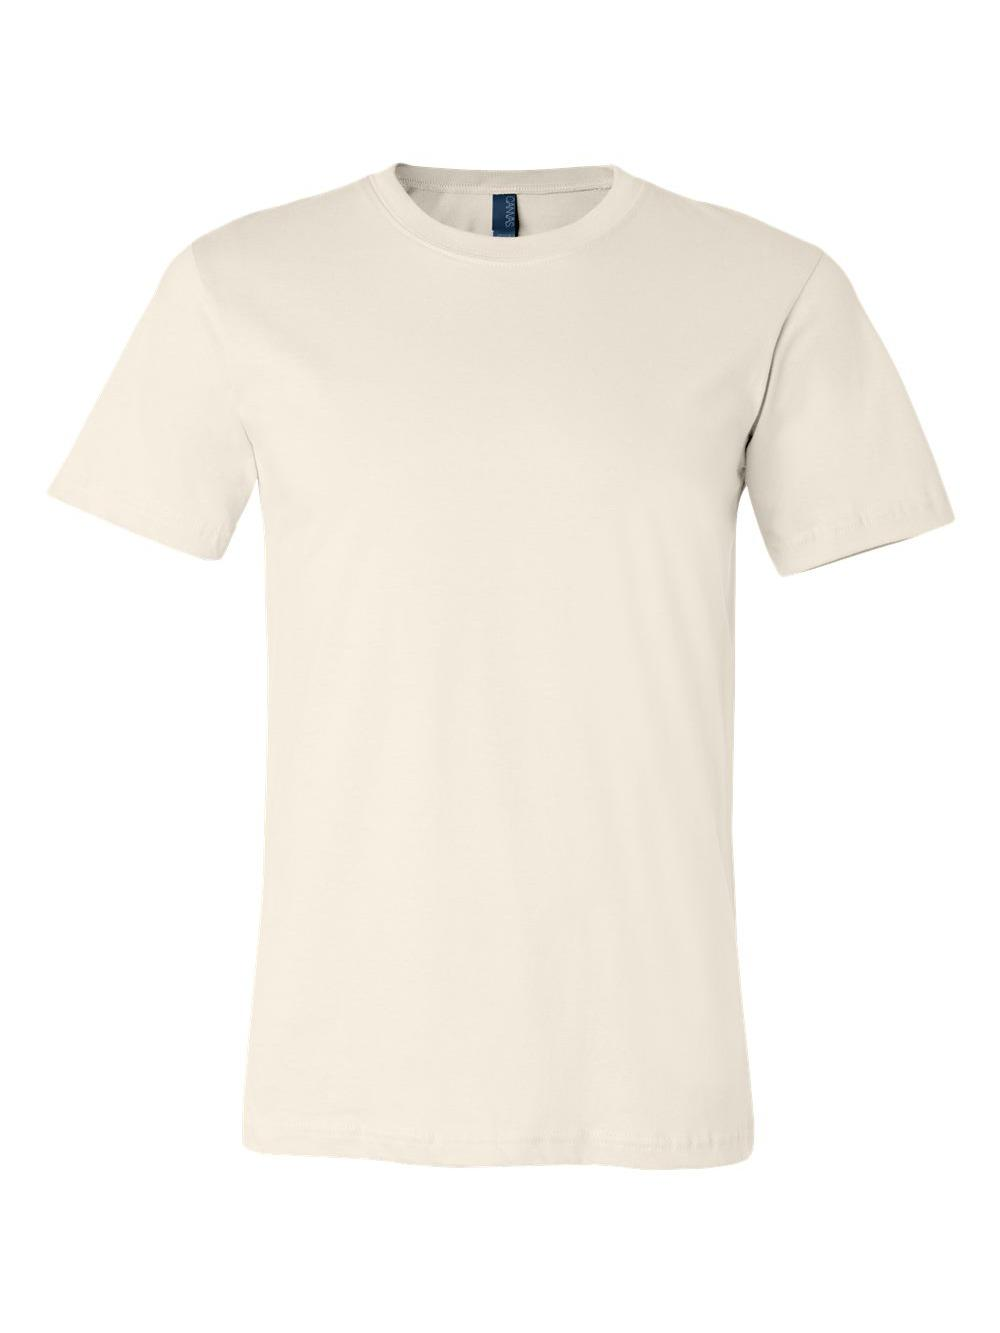 Bella-Canvas-Unisex-Short-Sleeve-Jersey-Tee-3001 thumbnail 84